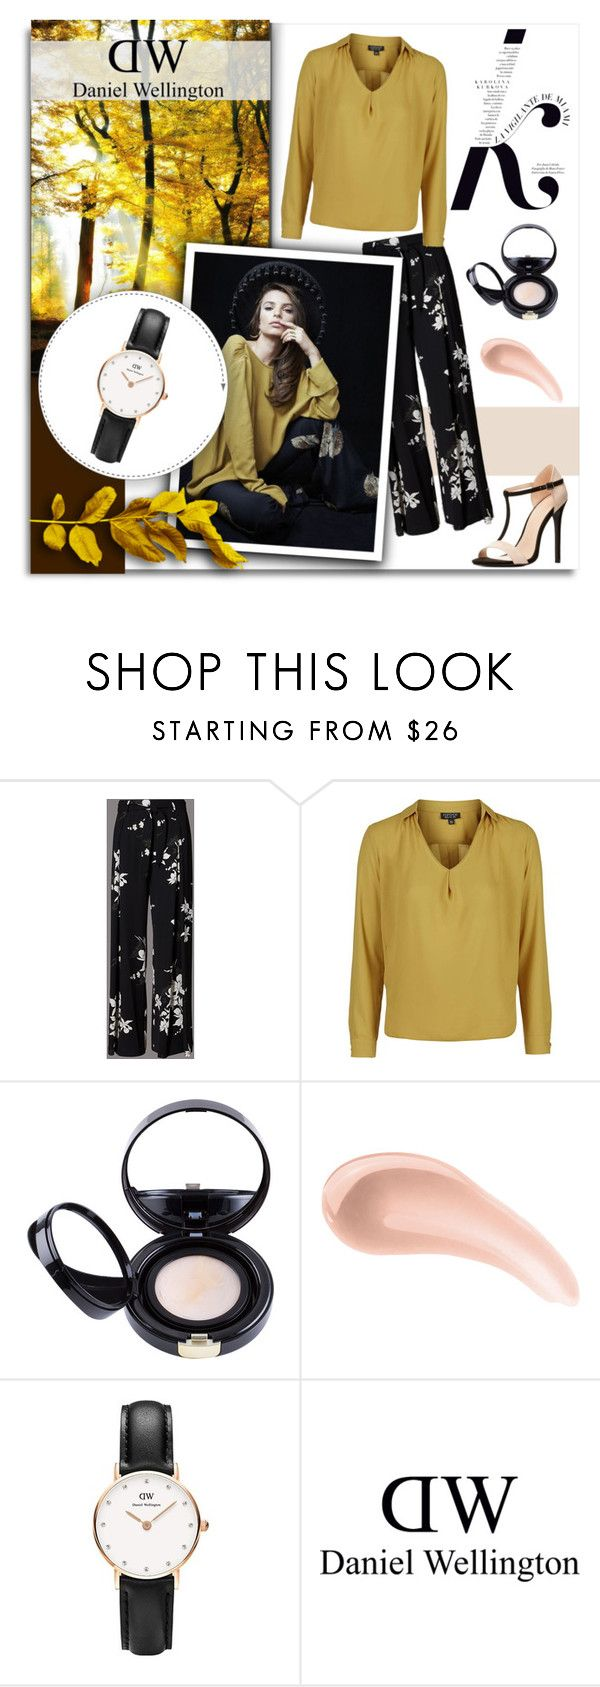 """Classy Sheffield 26mm (Promo Code inside)"" by melissa-de-souza ❤ liked on Polyvore featuring Topshop, KAROLINA, Kevyn Aucoin, NARS Cosmetics, Daniel Wellington and Charlotte Russe"